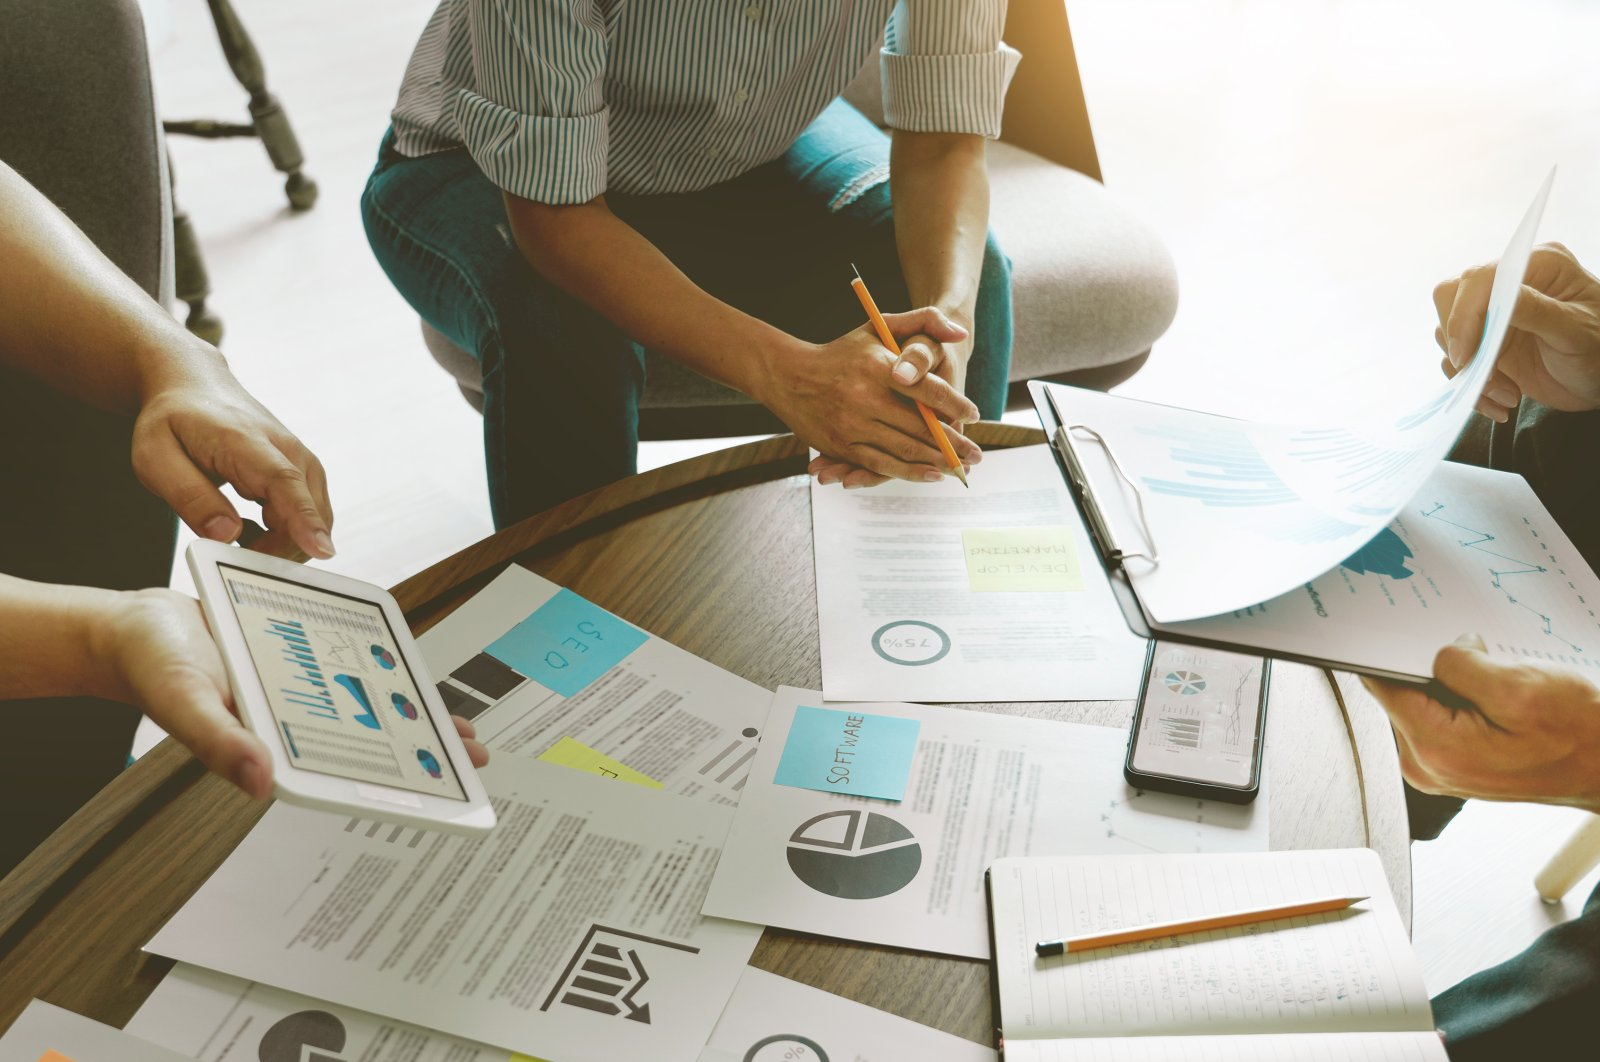 ScaleX Ventures plans to invest in more than 10 companies in the next three years. (Shutterstock Photo)